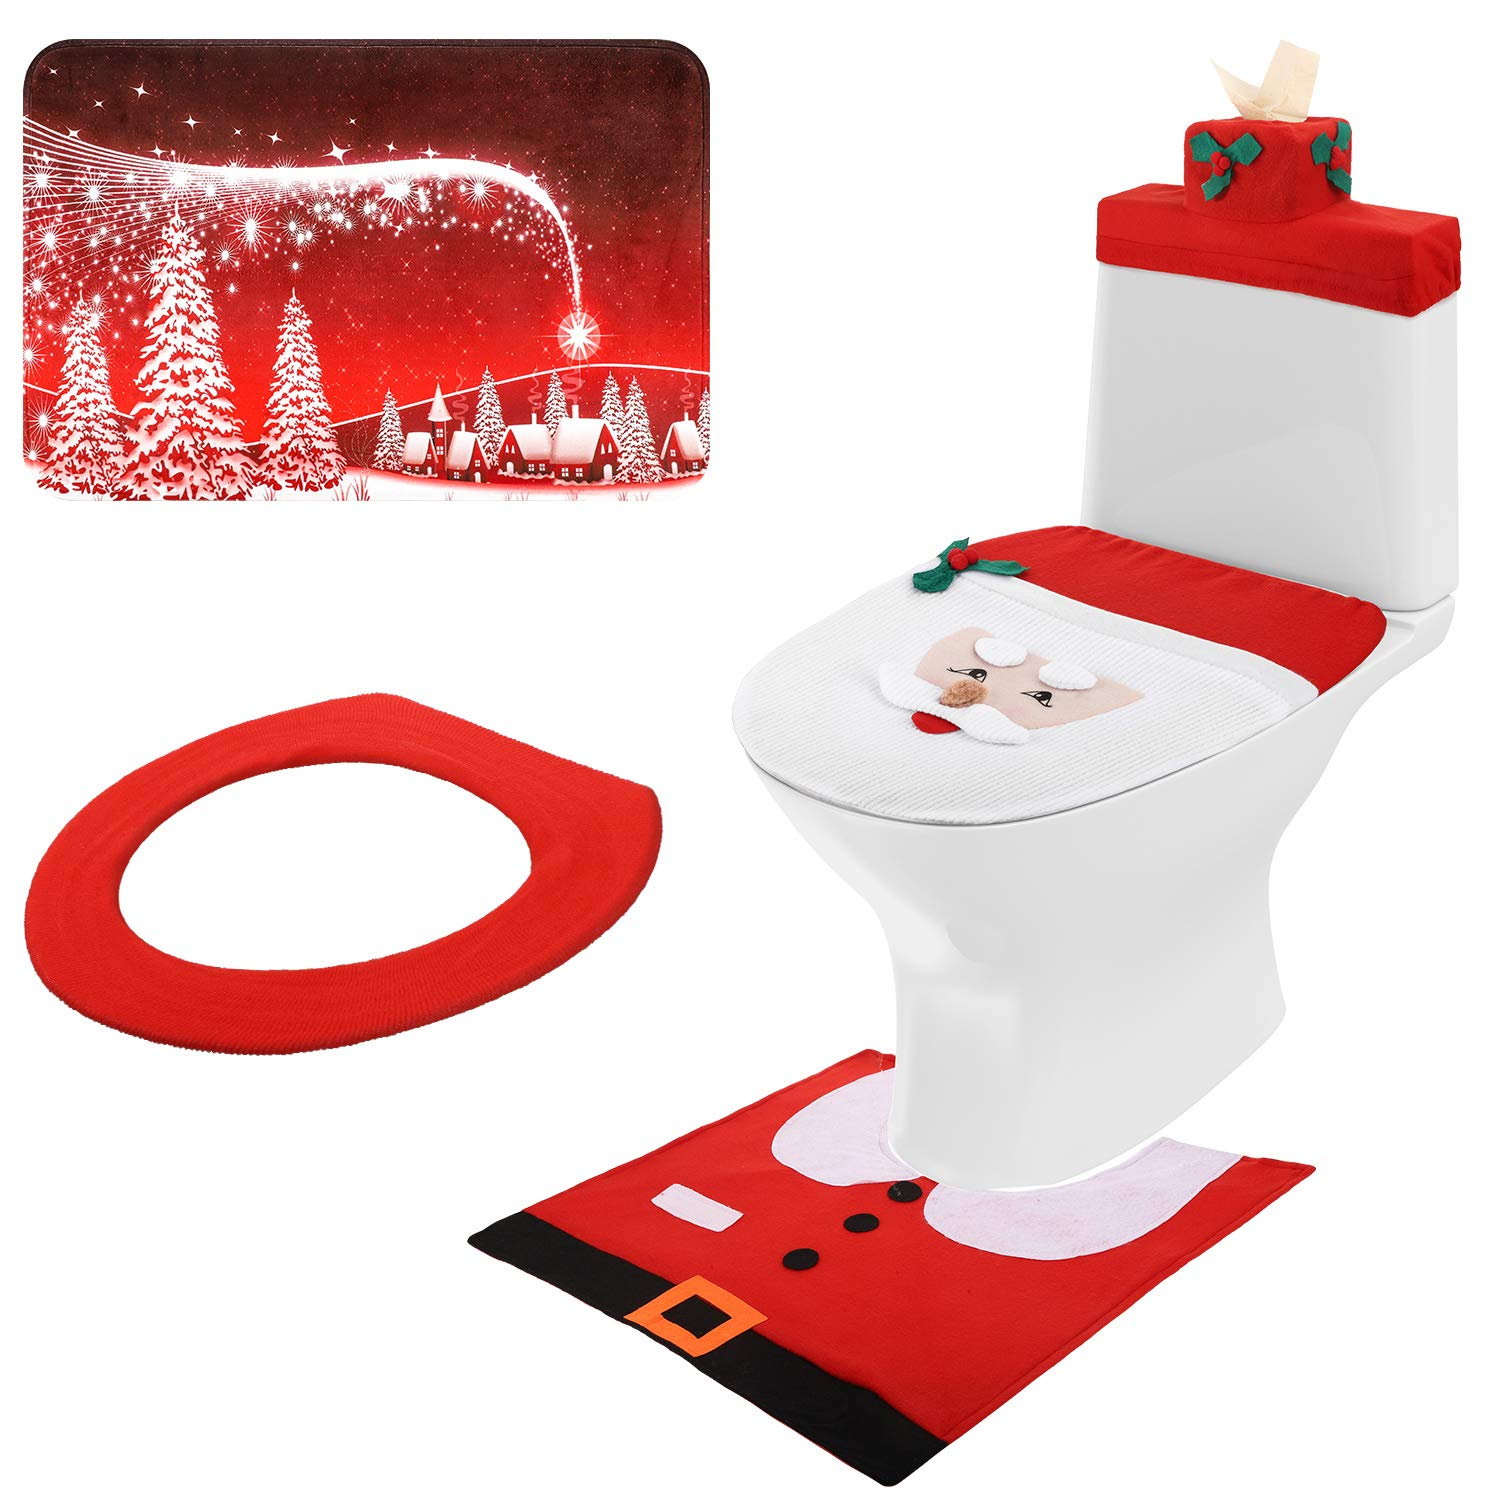 Mudder 3D Nose Santa Toilet Seat Cover Set Christmas Toilet Cover Decorations Xmas Bathroom Decorations for Christmas Holiday Home Decor, 5 Pieces Totally by Mudder